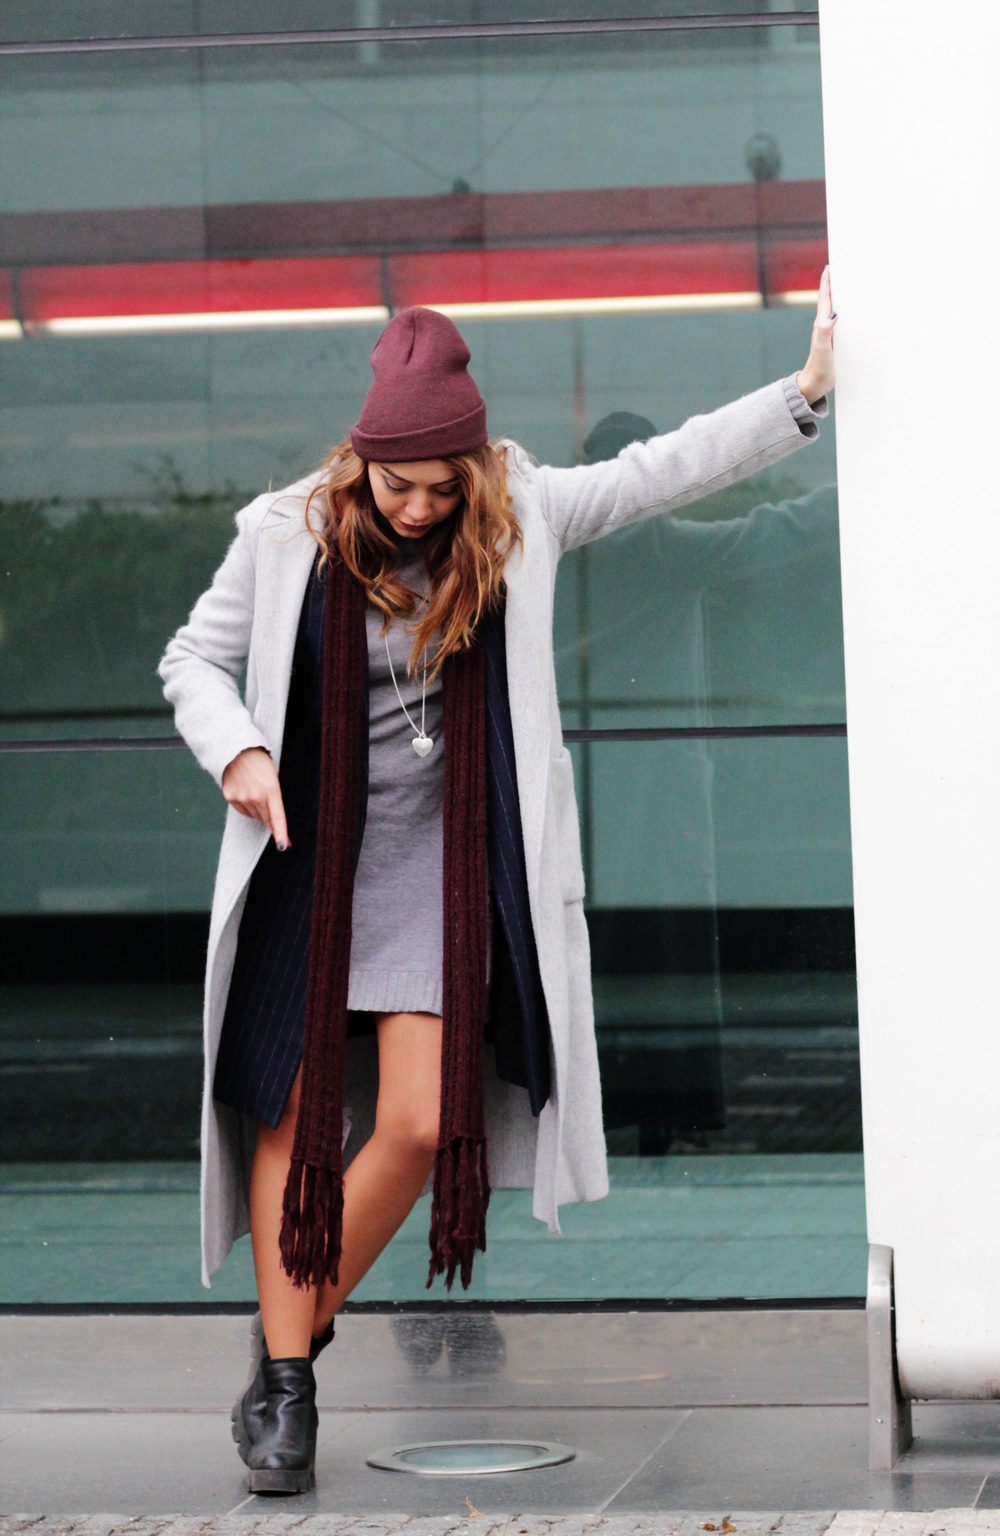 Cool gray, navy blue, and cranberry (burgundy, oxblood, wine red) layers for the ultimate boss lady outfit this winter. By www.MARINASAYS.com